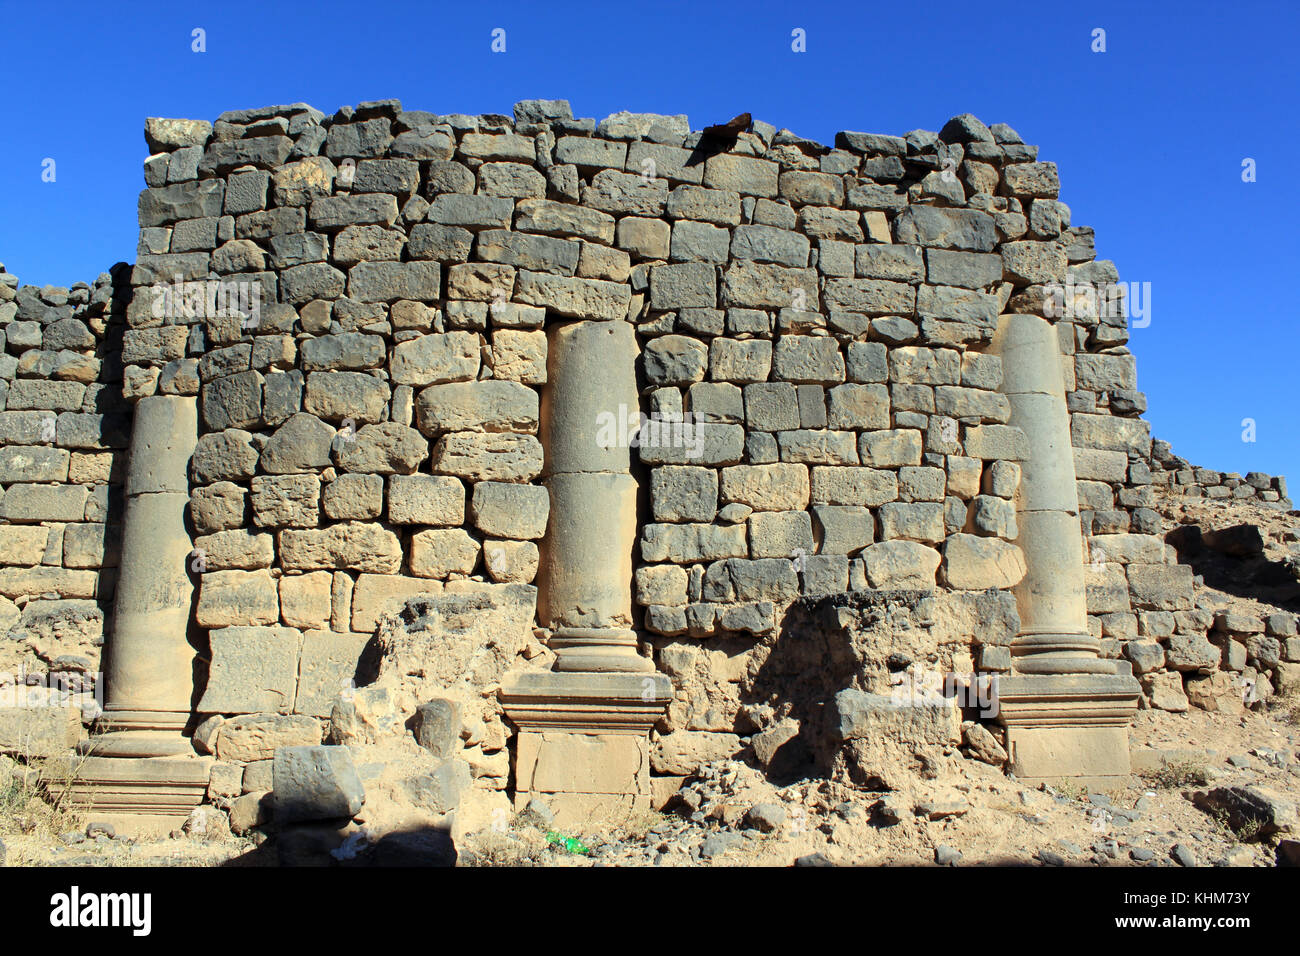 Stone basalt wall and columns on the street of Old Bosra, Syria - Stock Image